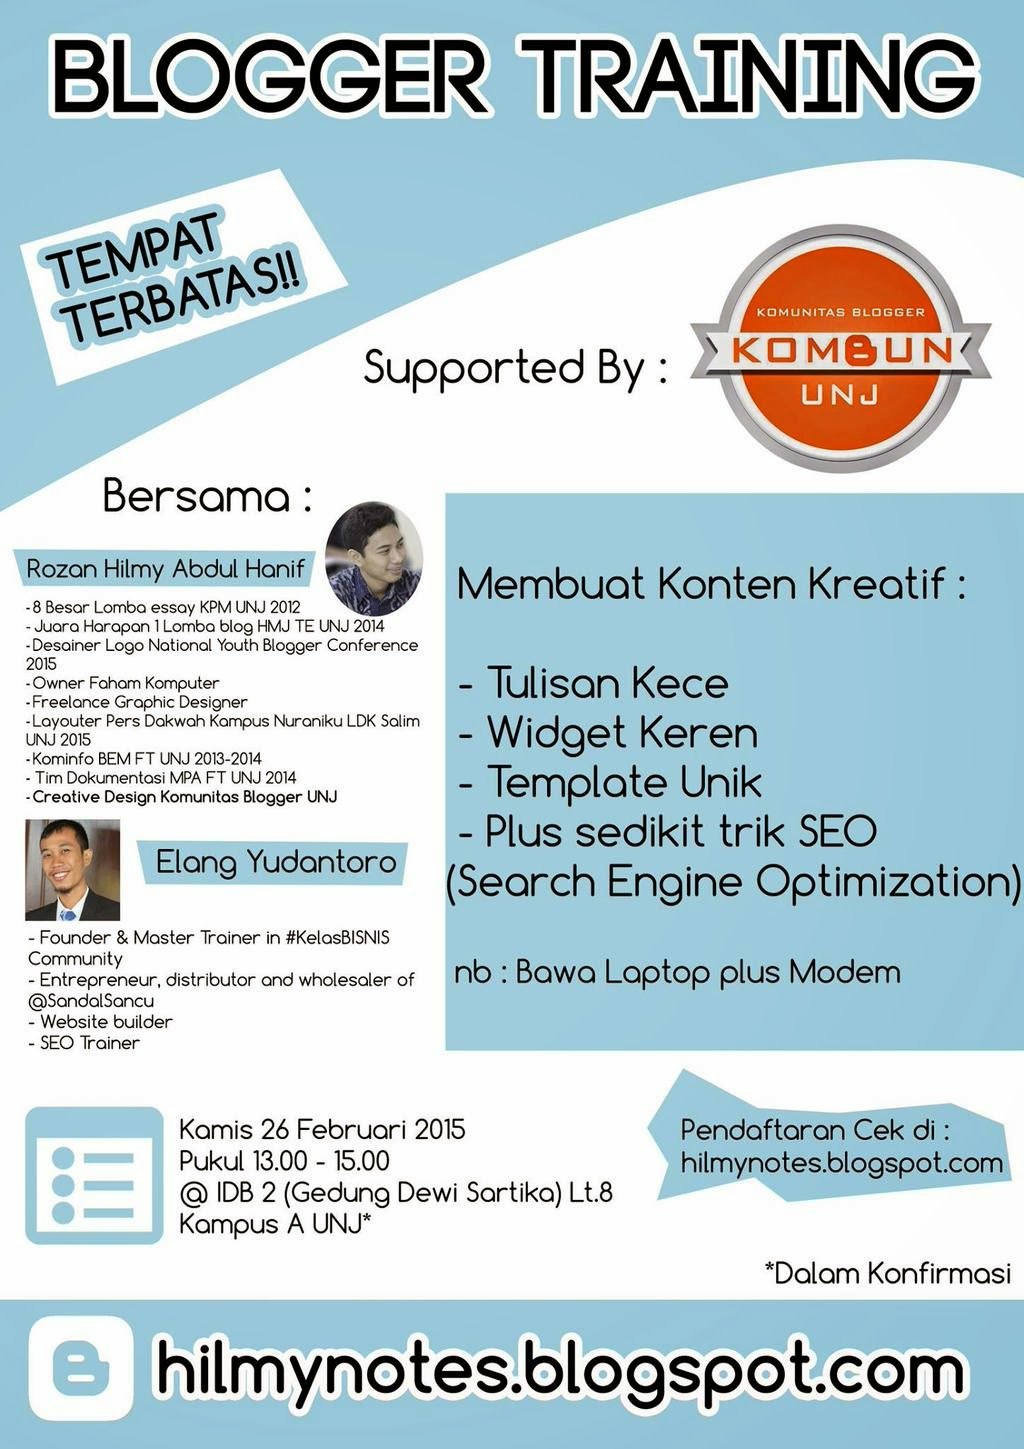 Brosur Blogger Training Kombun